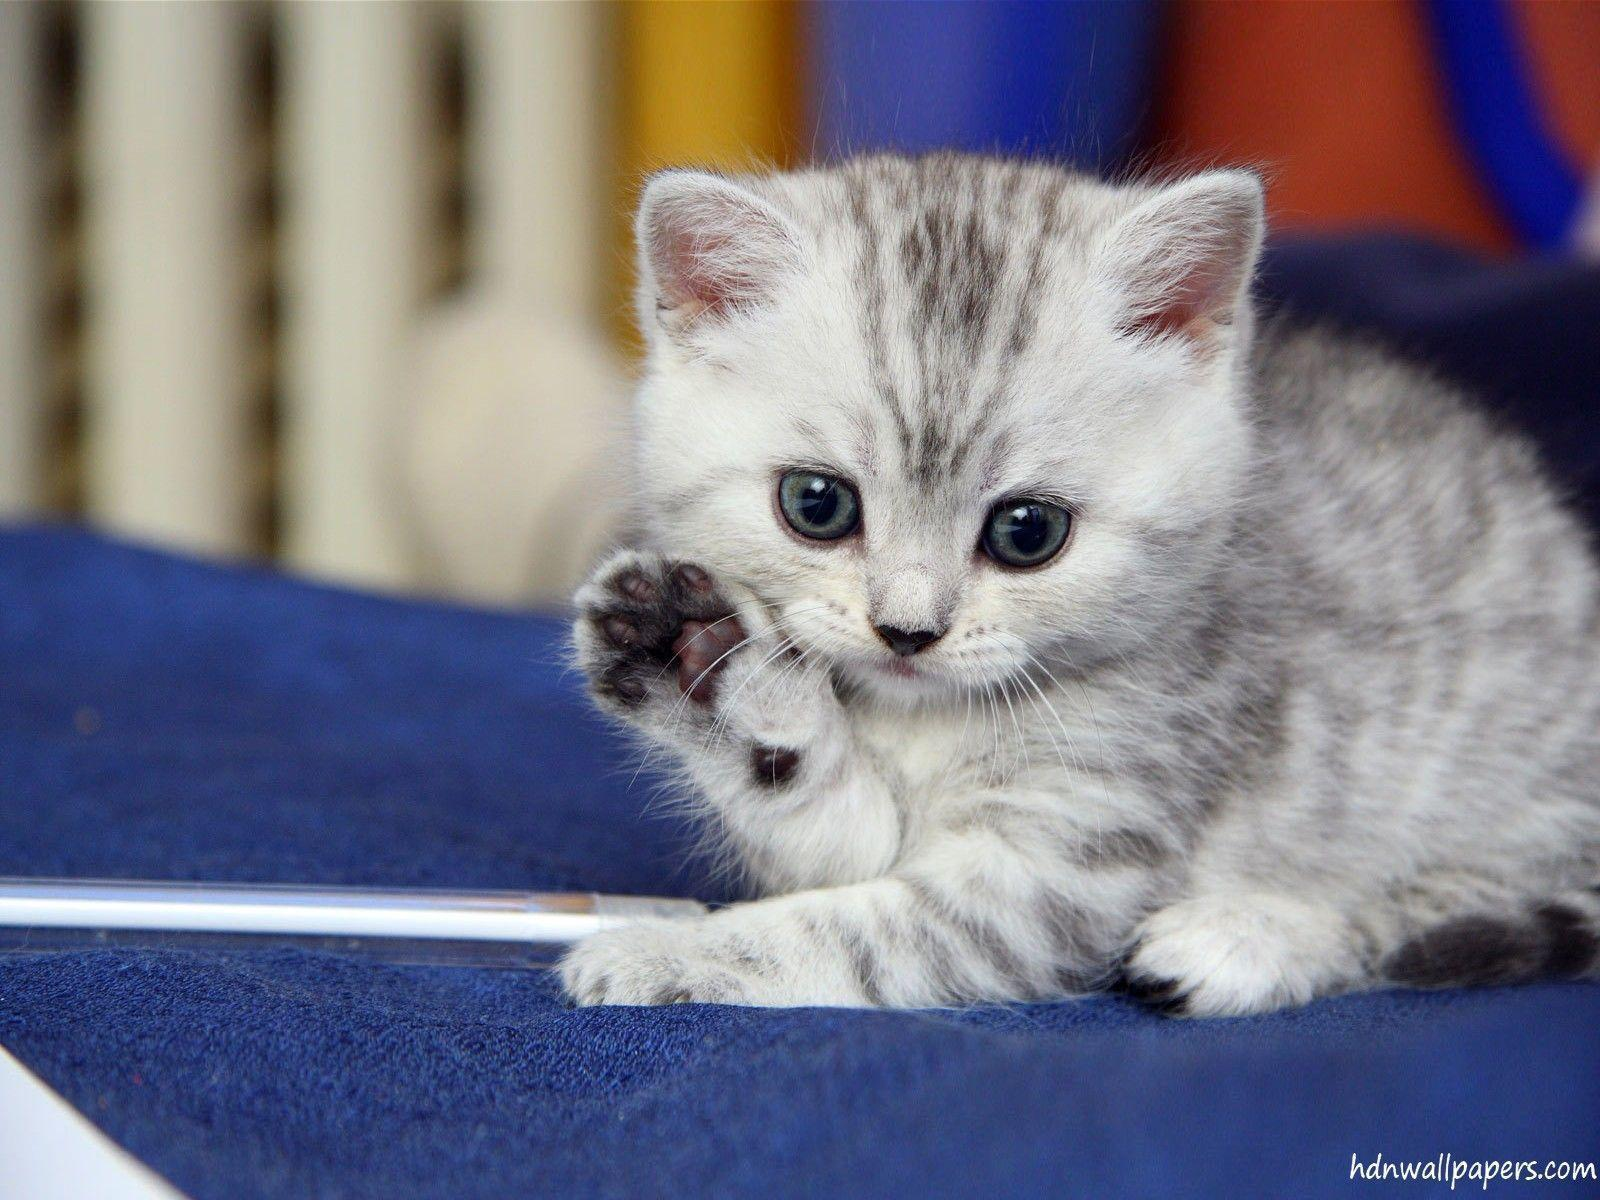 Cute Kitten Wallpapers free download